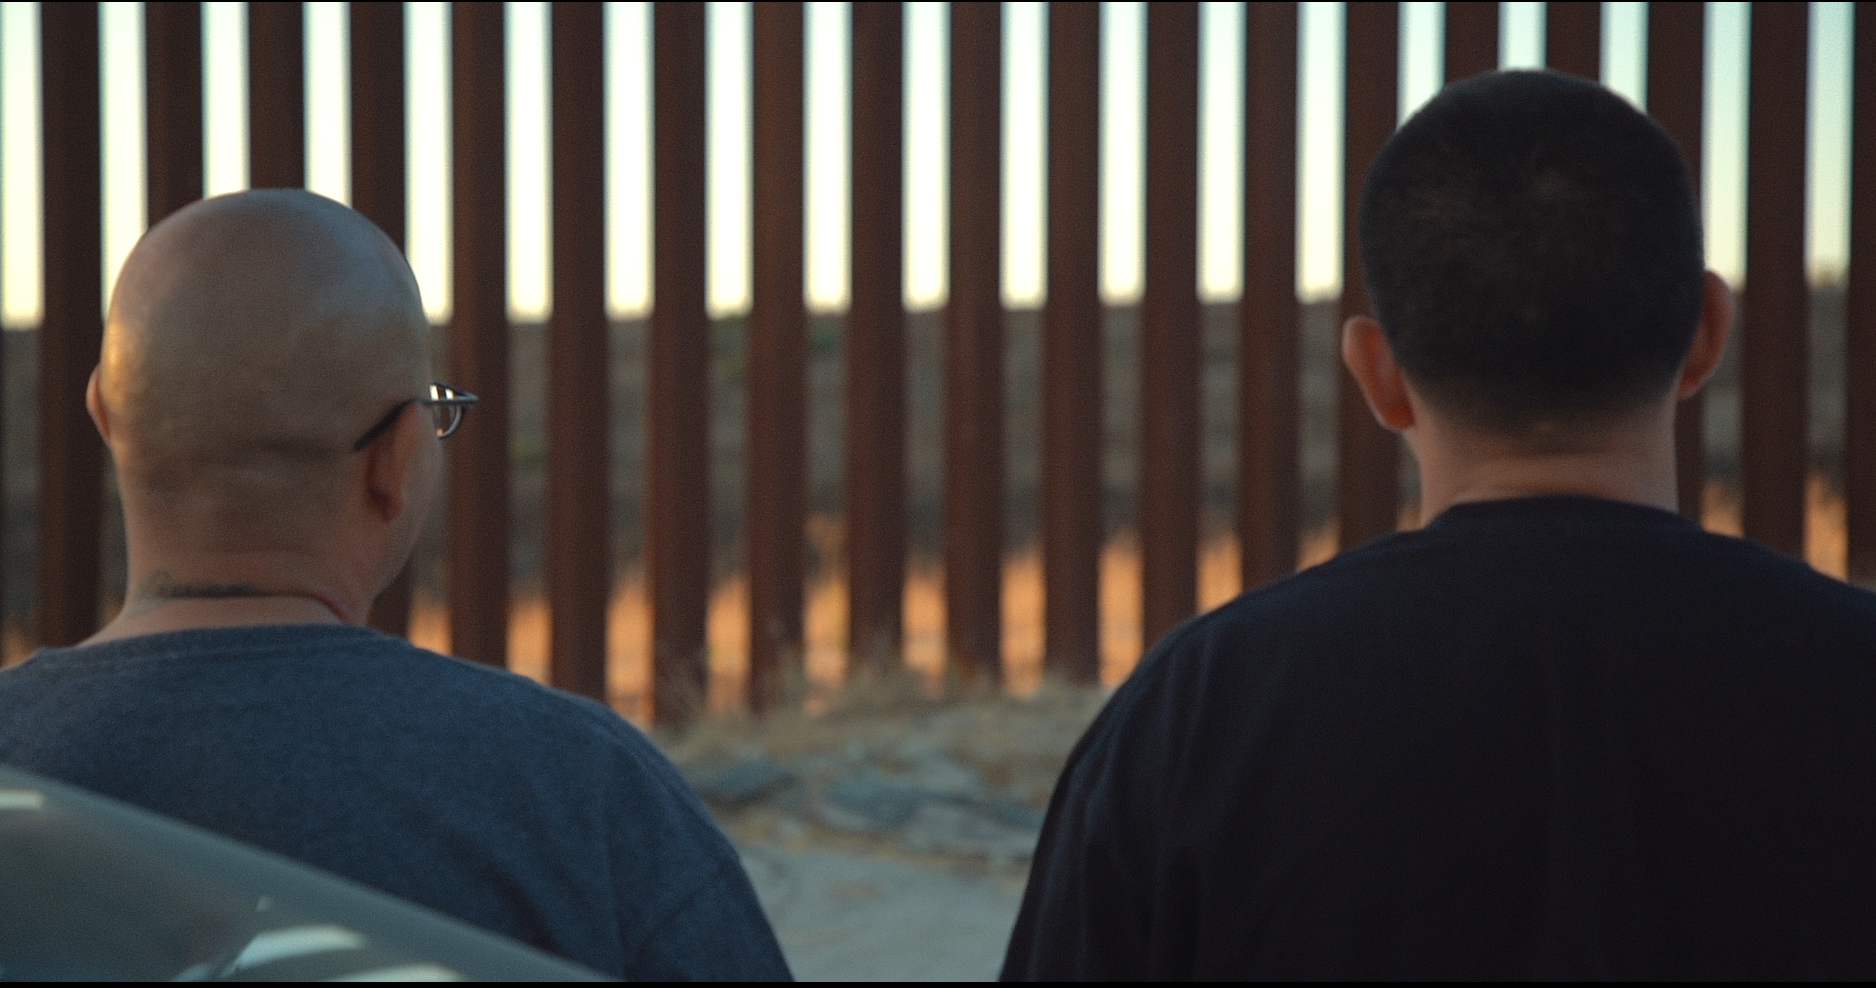 """A still from """"On The Line"""". Two people with close-shaved heads are looking away from the camera towards a tall barrier made of metal bars. Beyond the wall the sun sets over the desert."""